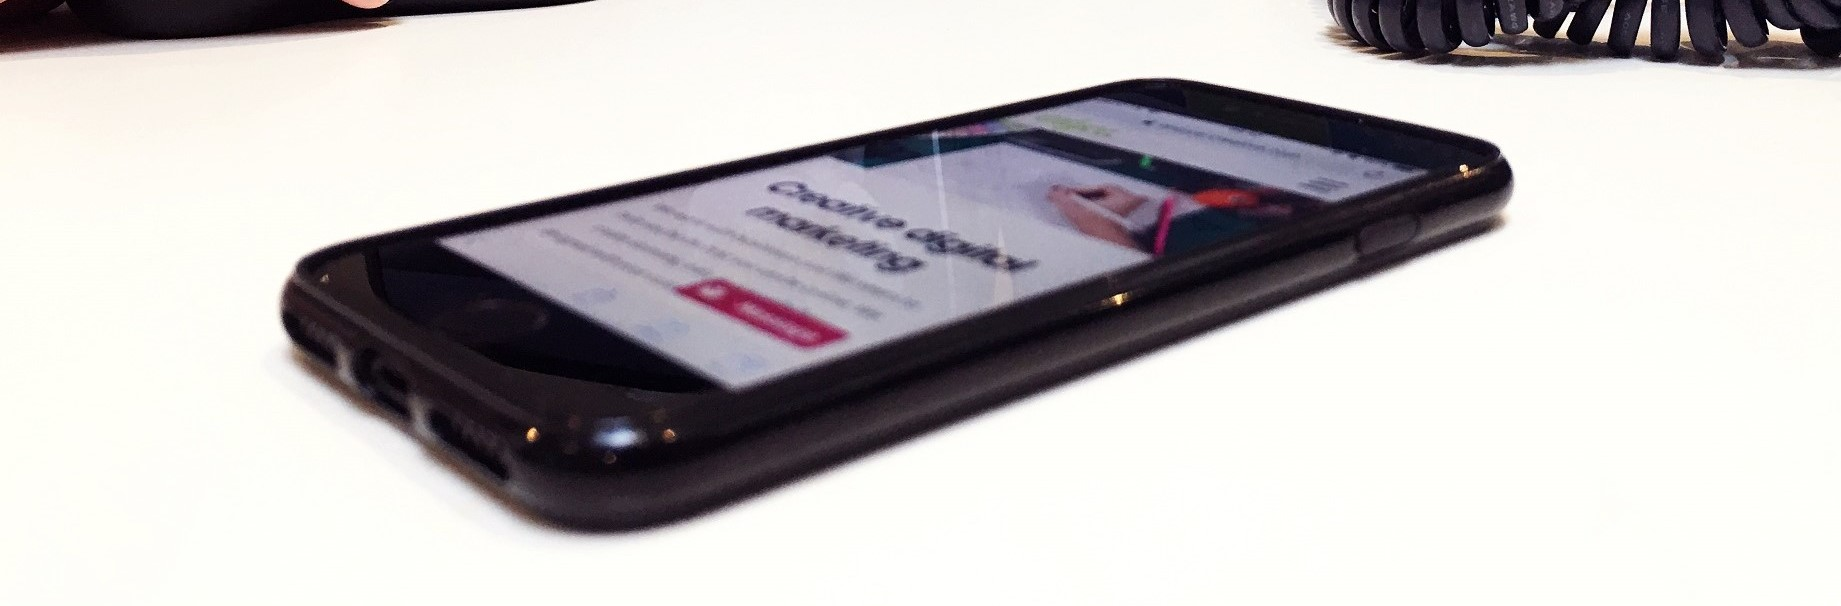 Making mobile a priority for web design